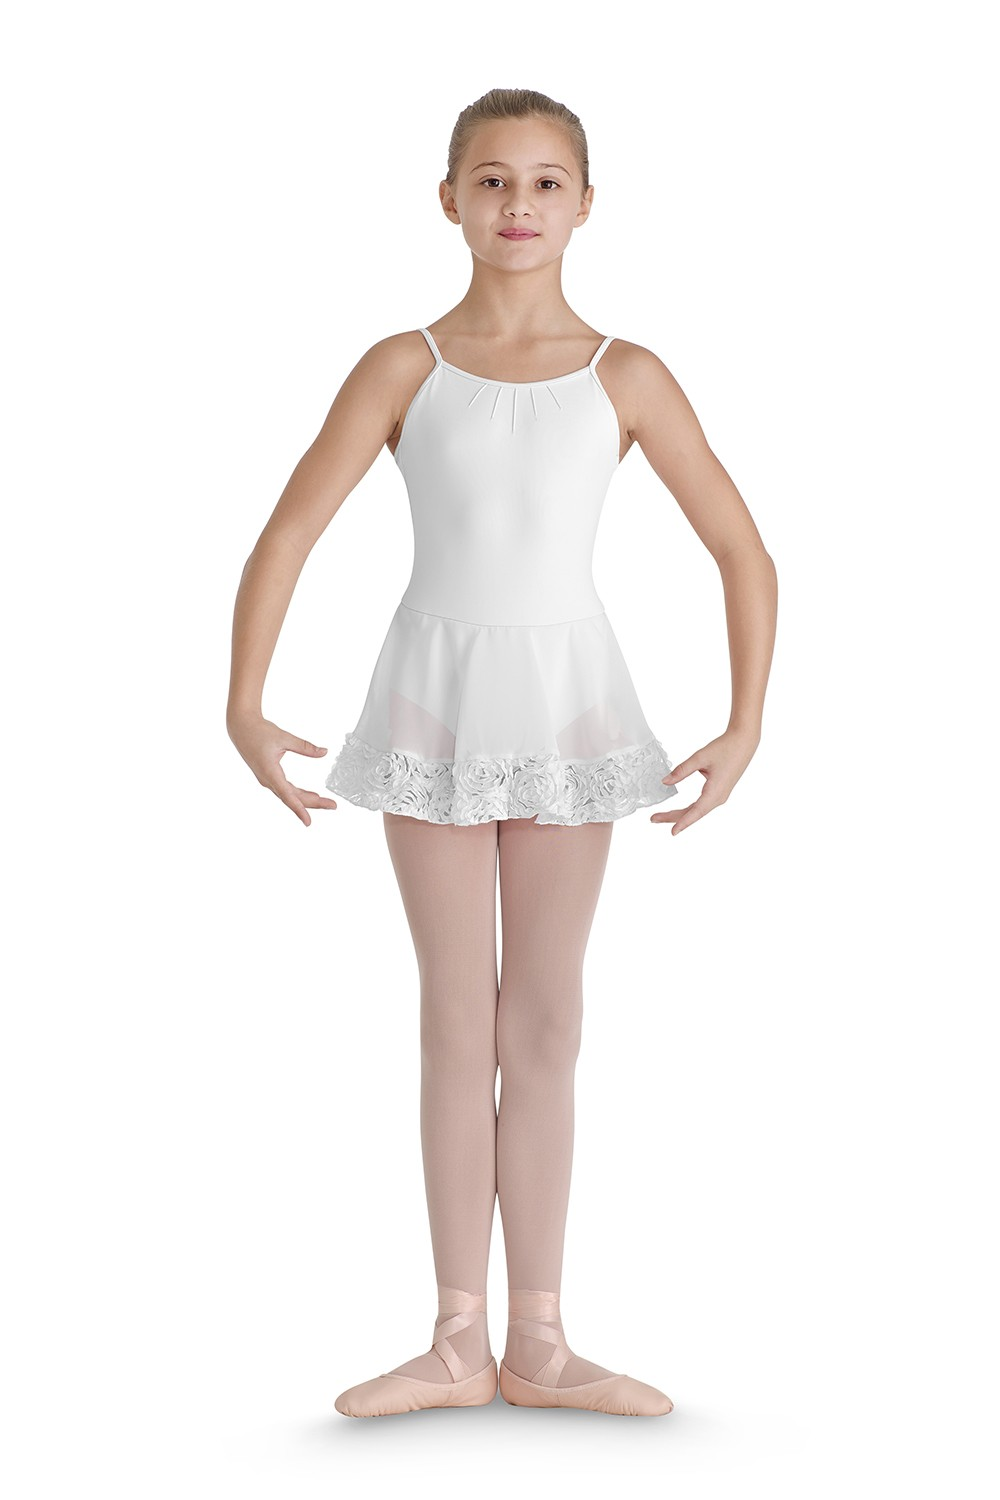 Hem Band Skirted Camisole Children's Dance Leotards